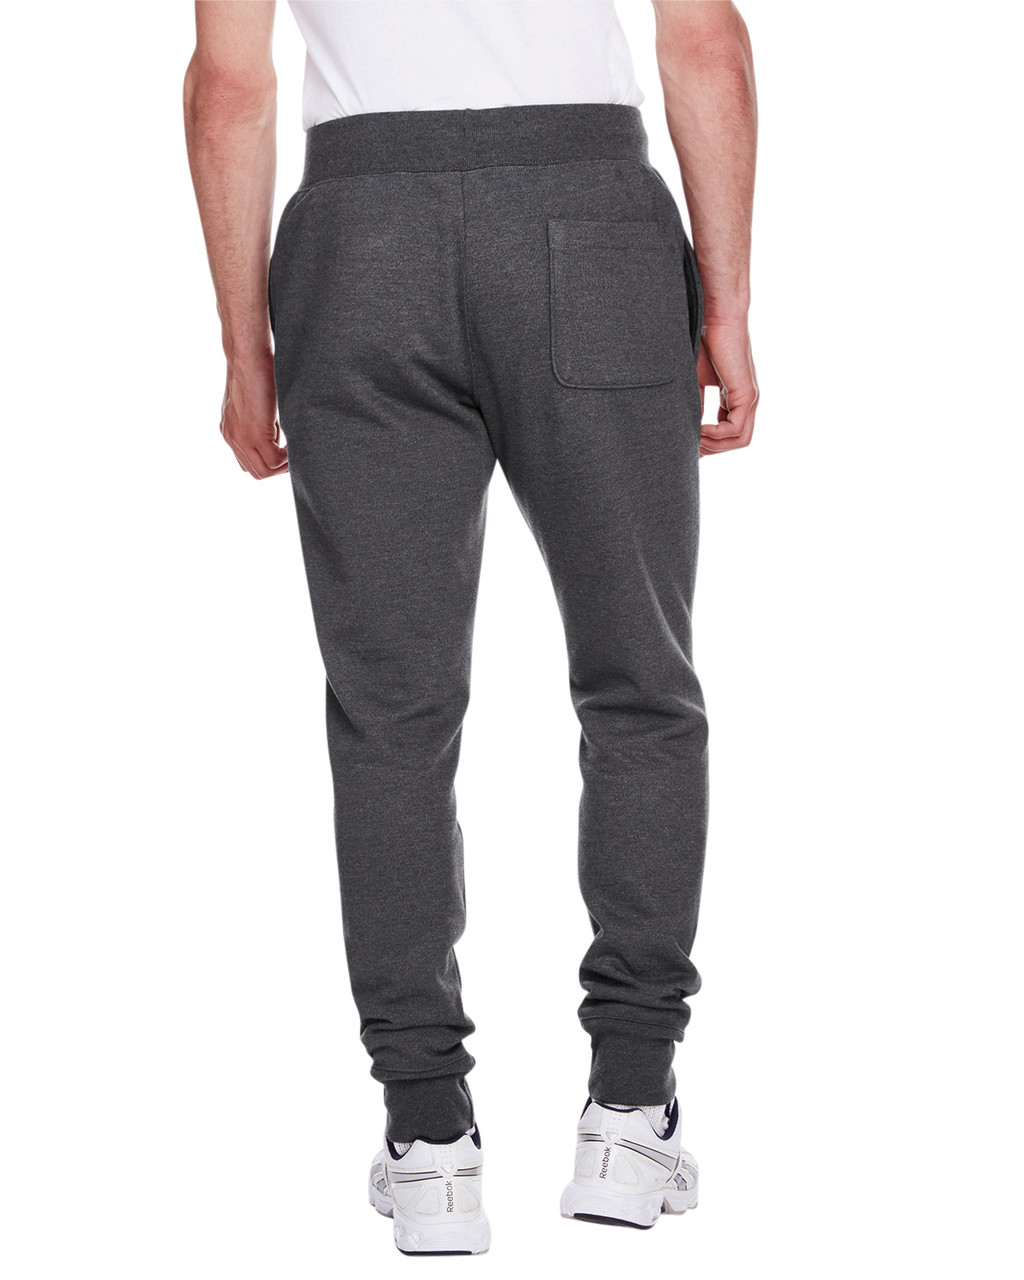 Charcoal Heather - Back, RW25 Champion Men's Reverse Weave Jogger Pant | BlankClothing.ca